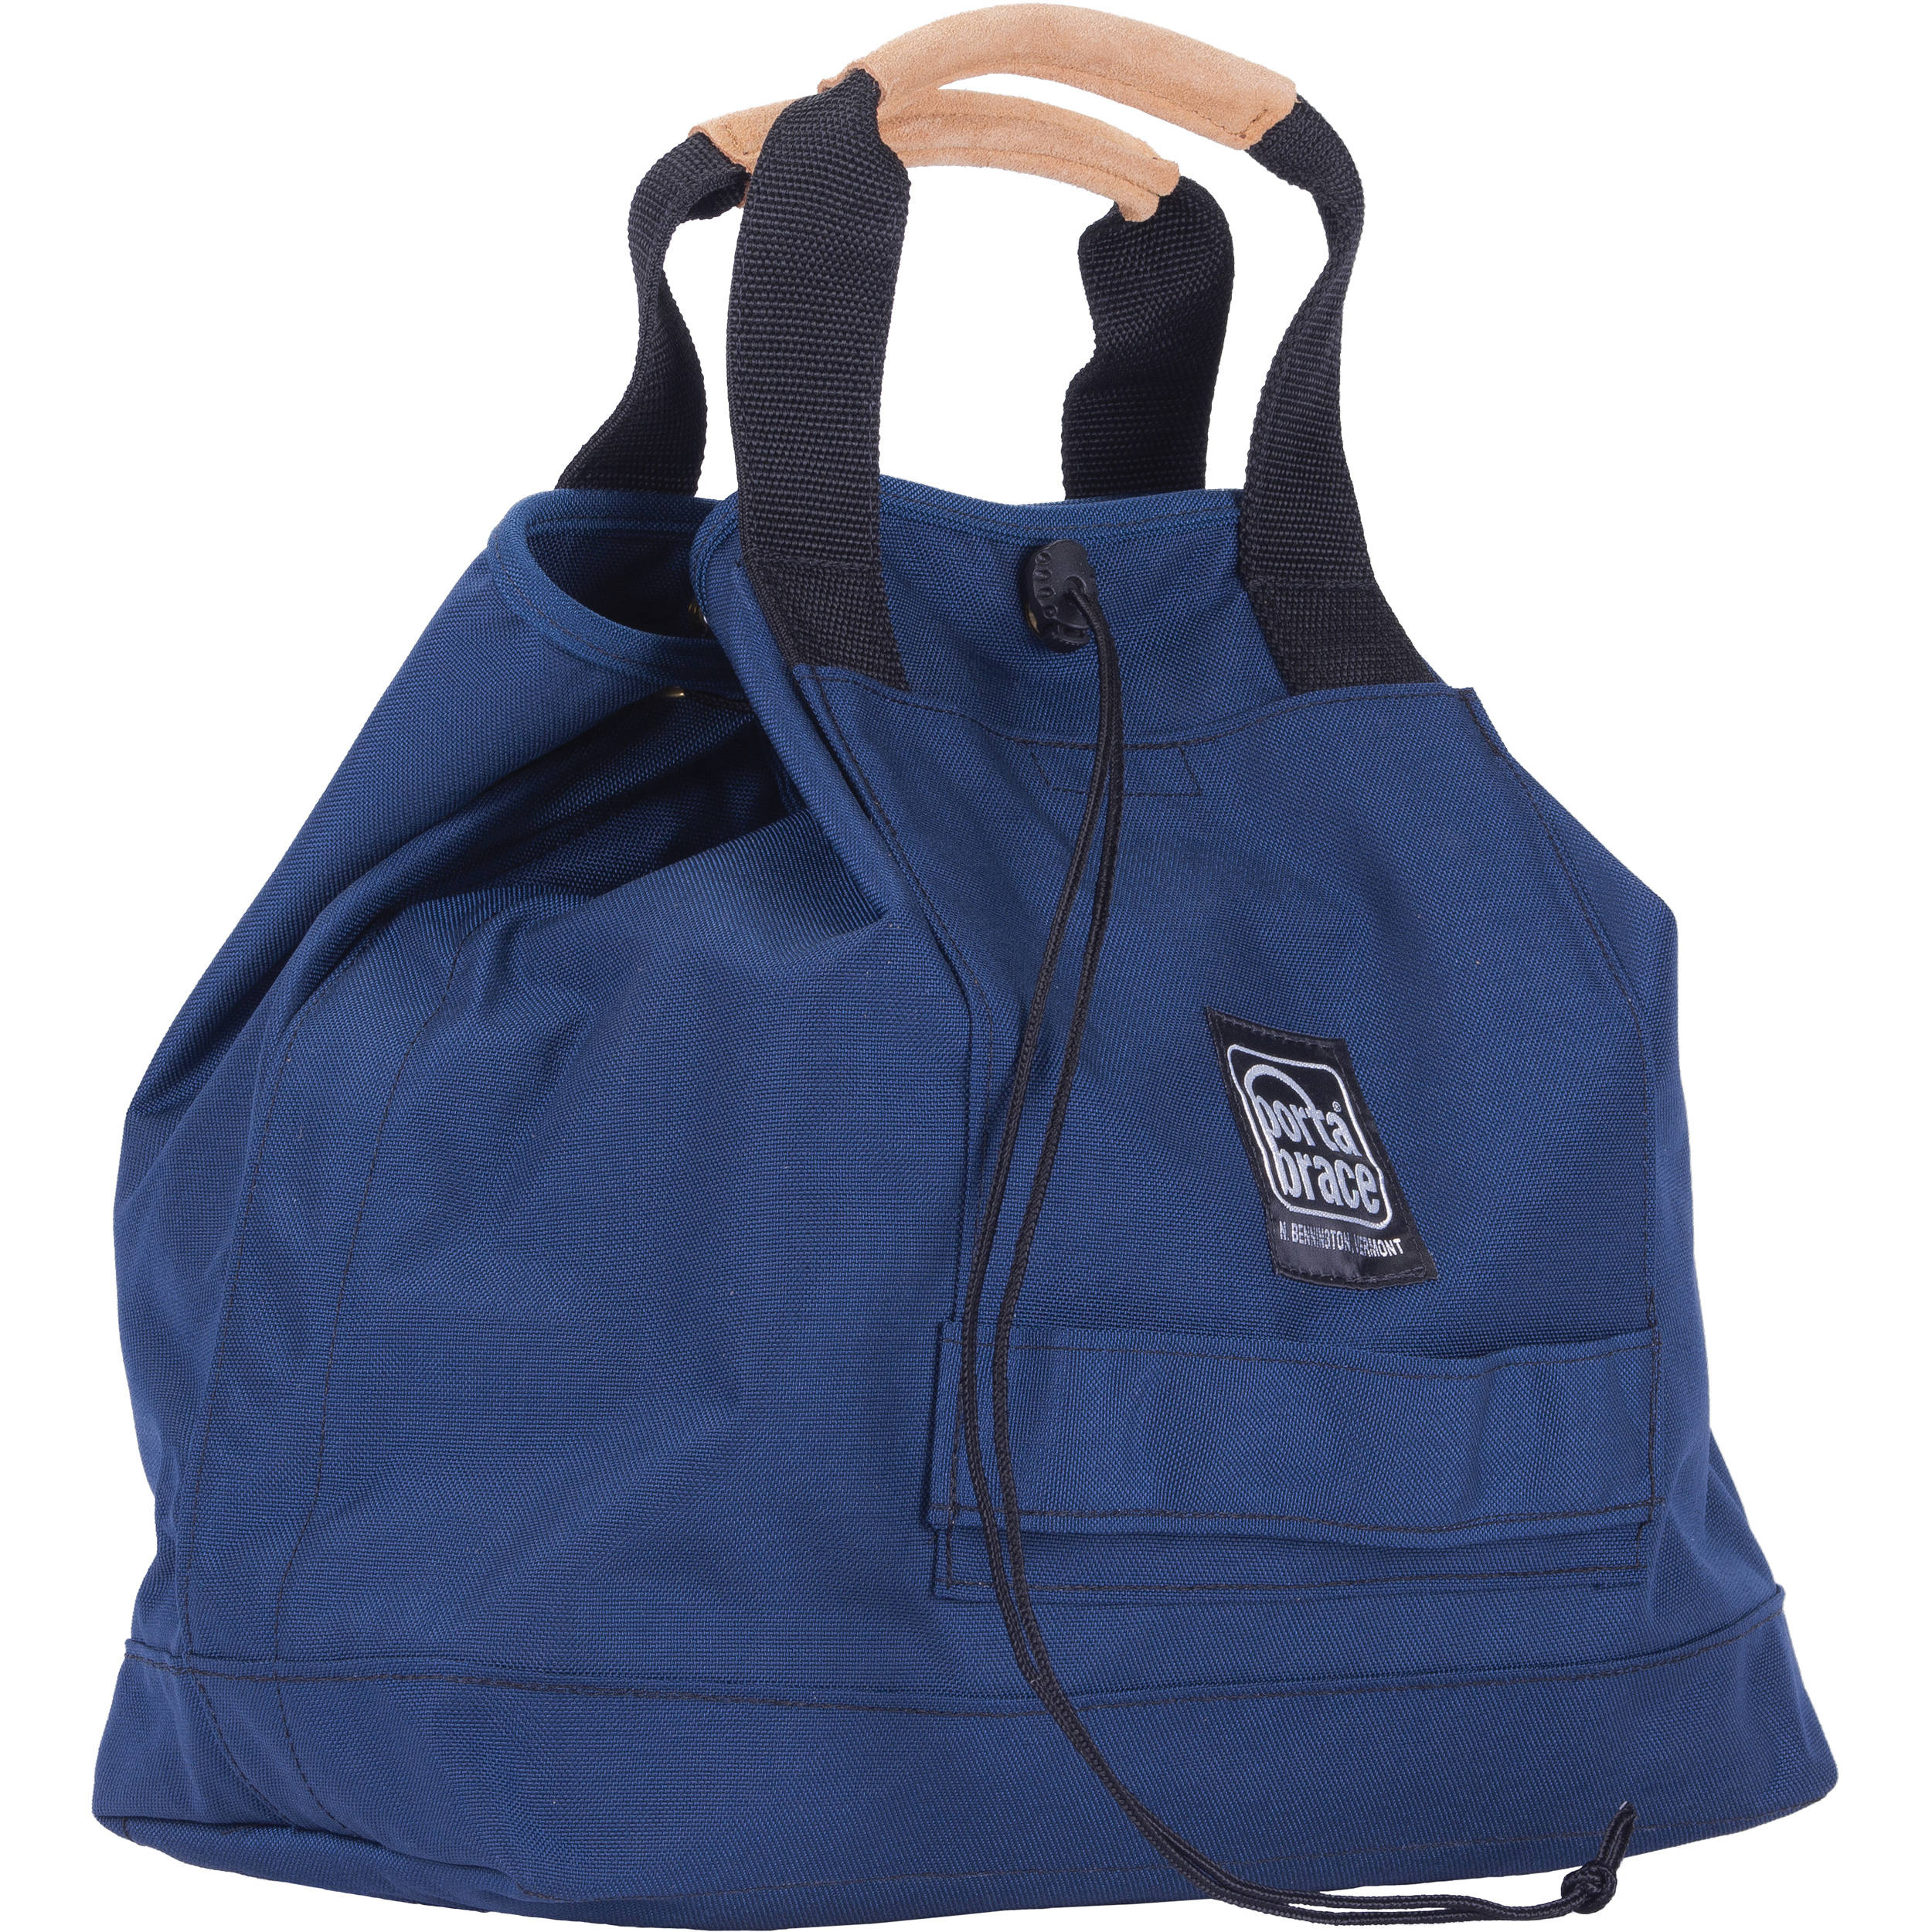 Porta Brace SP-2 Sack Pack, Medium - for Audio, Photo and Video Gear (Blue)